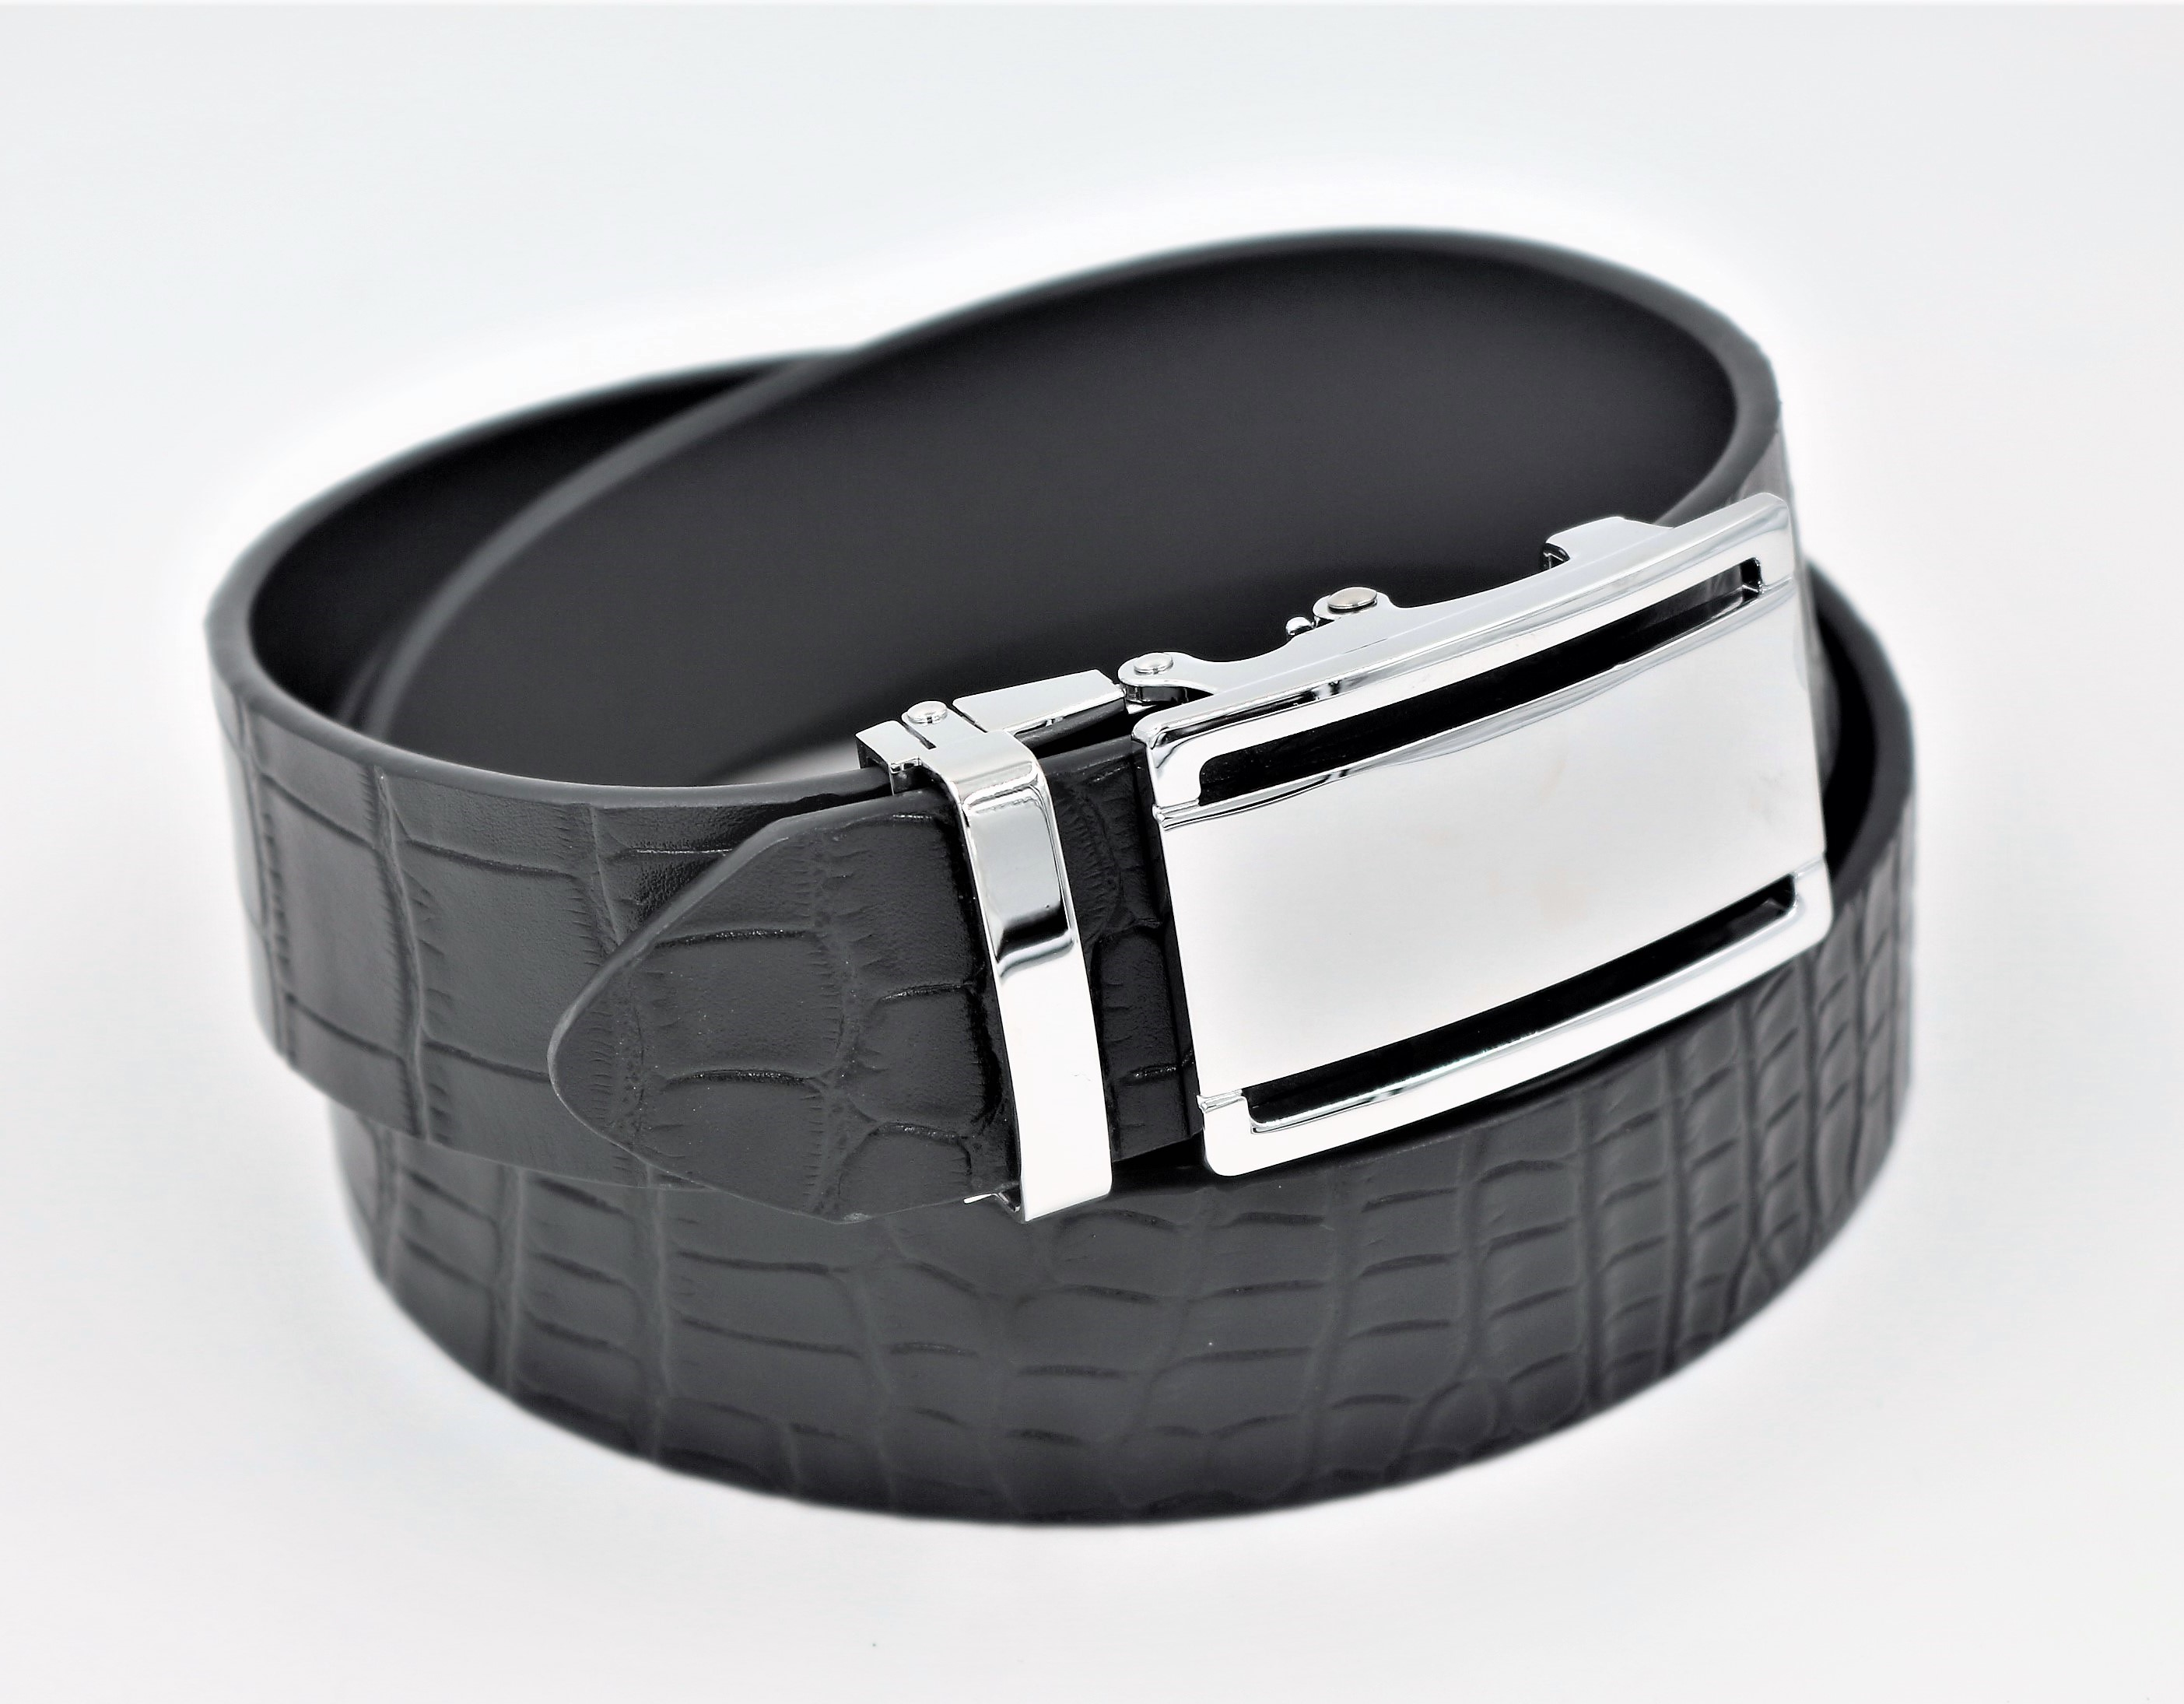 New Arrival Men's Croc Pattern Leather <strong>Belt</strong> for Men with Automatic Buckle